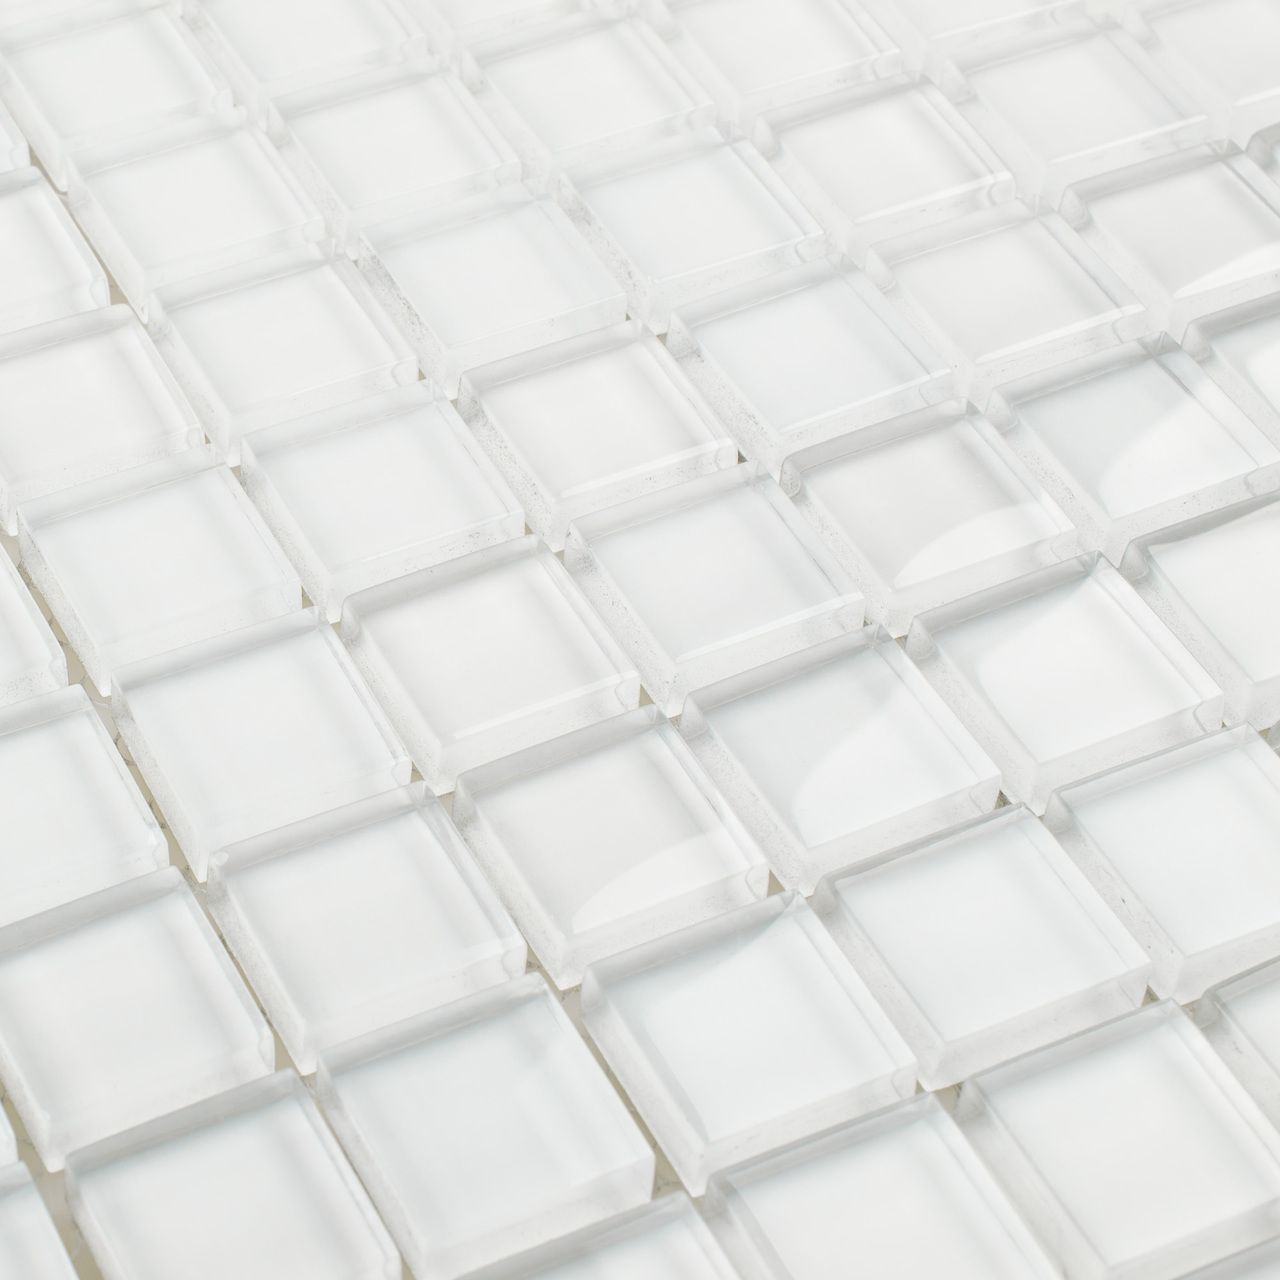 Glass Mosaic Tile Extra White 1x1 Backsplash Wallpaper Farmhouse Backsplash Backsplash